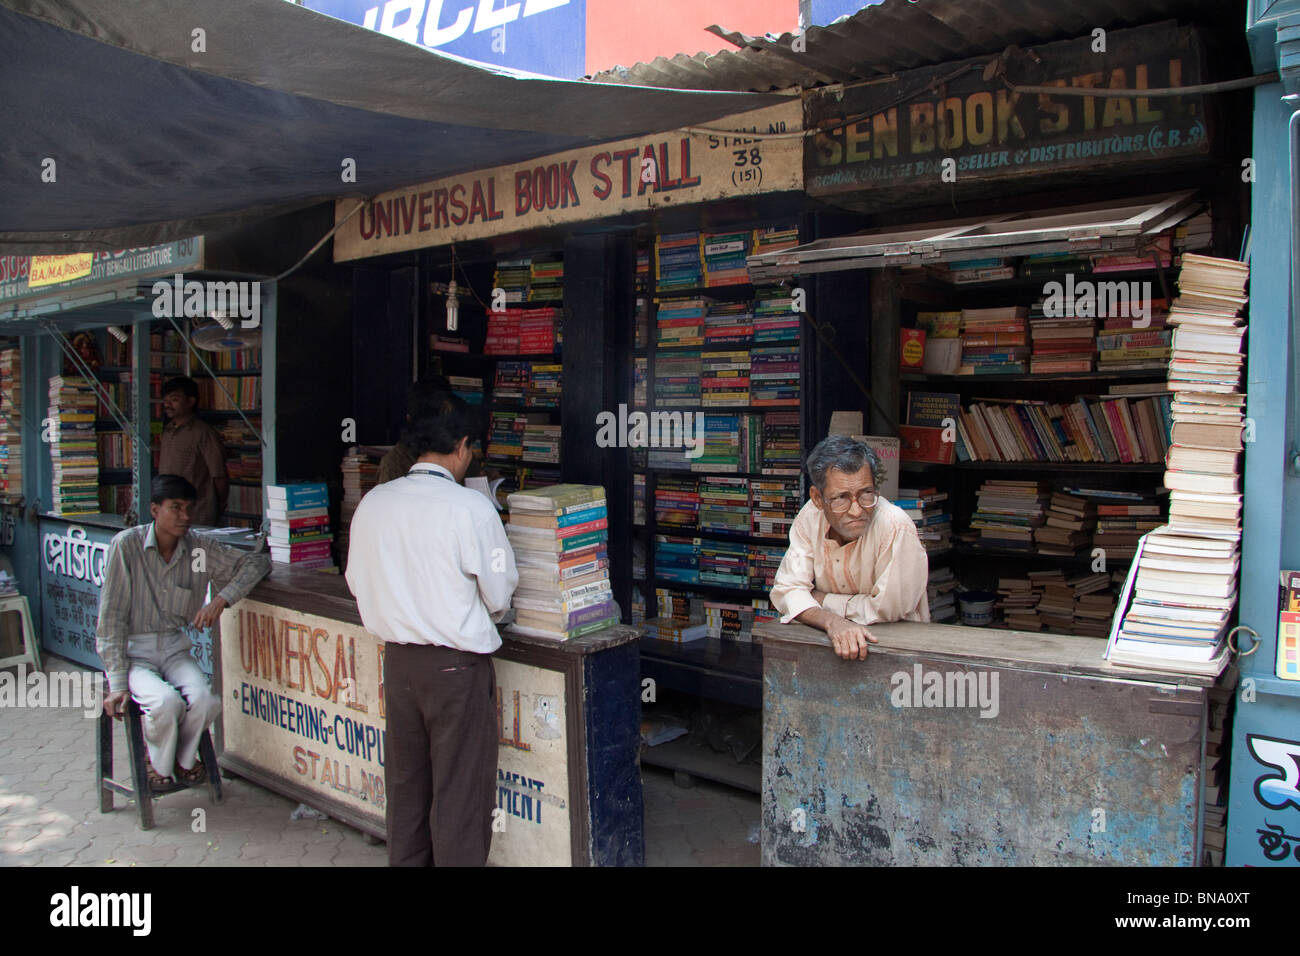 A string of book stalls on College Street in Kolkata (Calcutta), West Bengal, India. - Stock Image